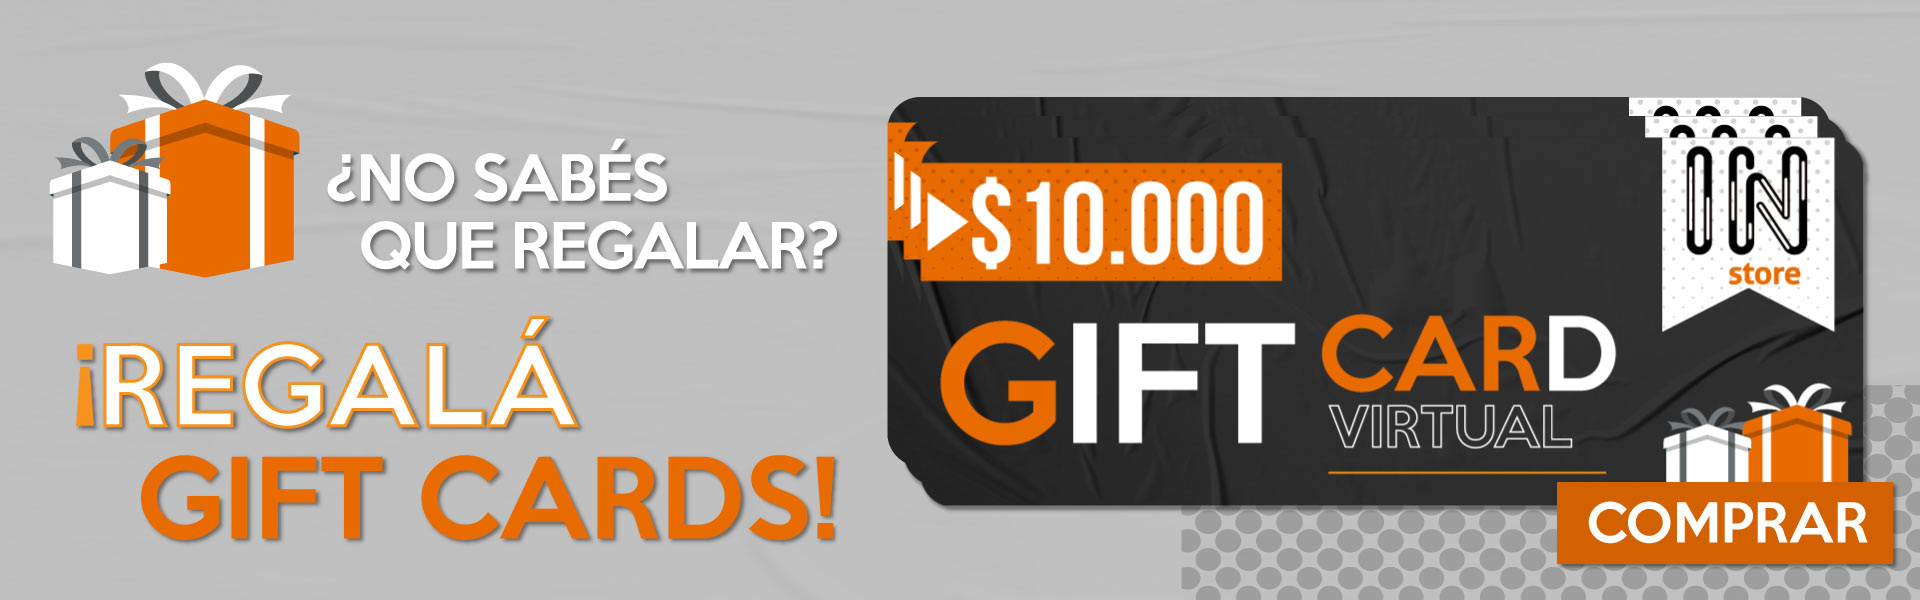 Gift Card DT